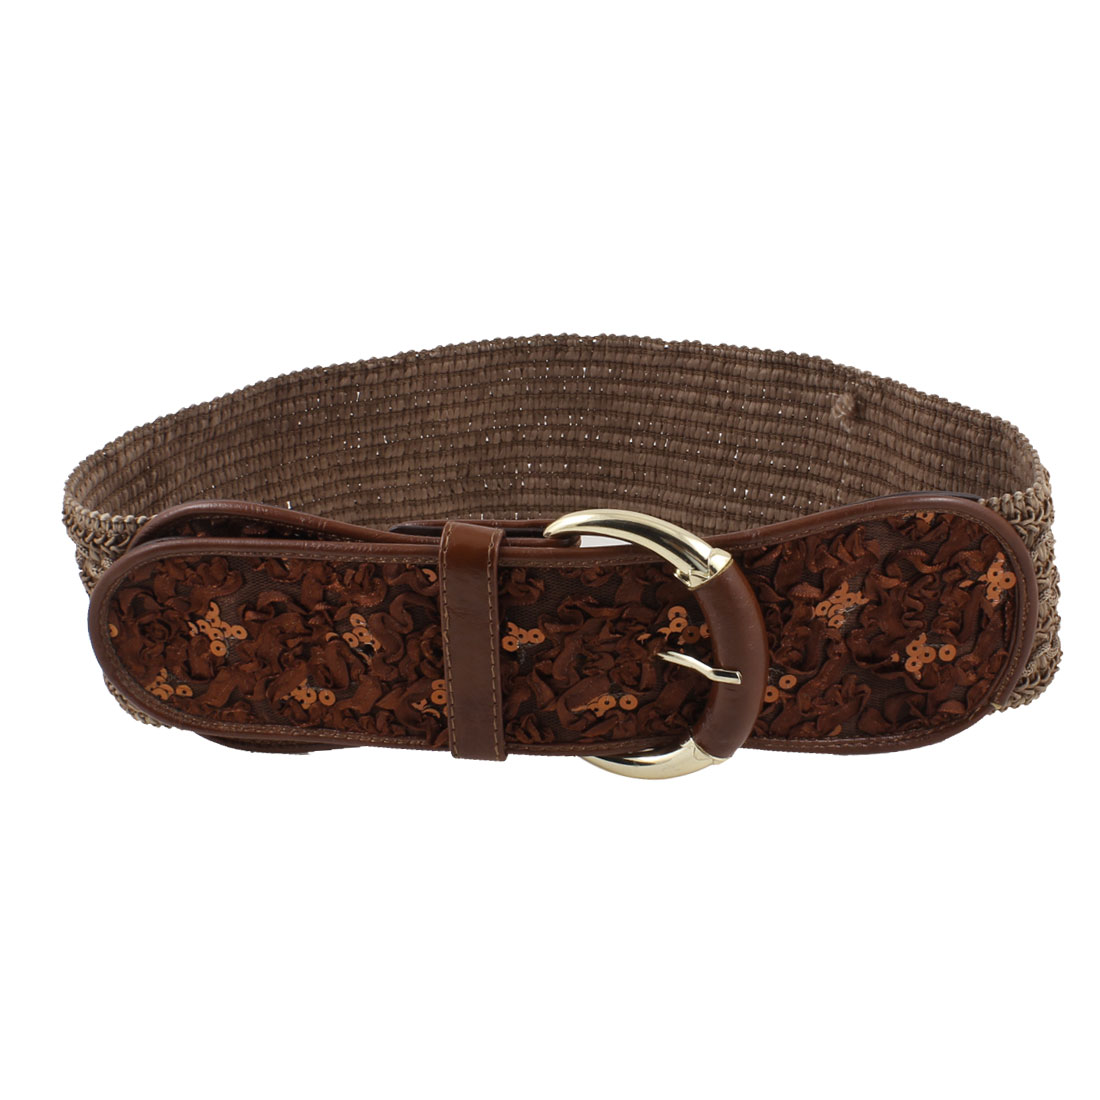 Woman One Pin Buckle Flower Decor Stretchy Band Cinch Belt Brown